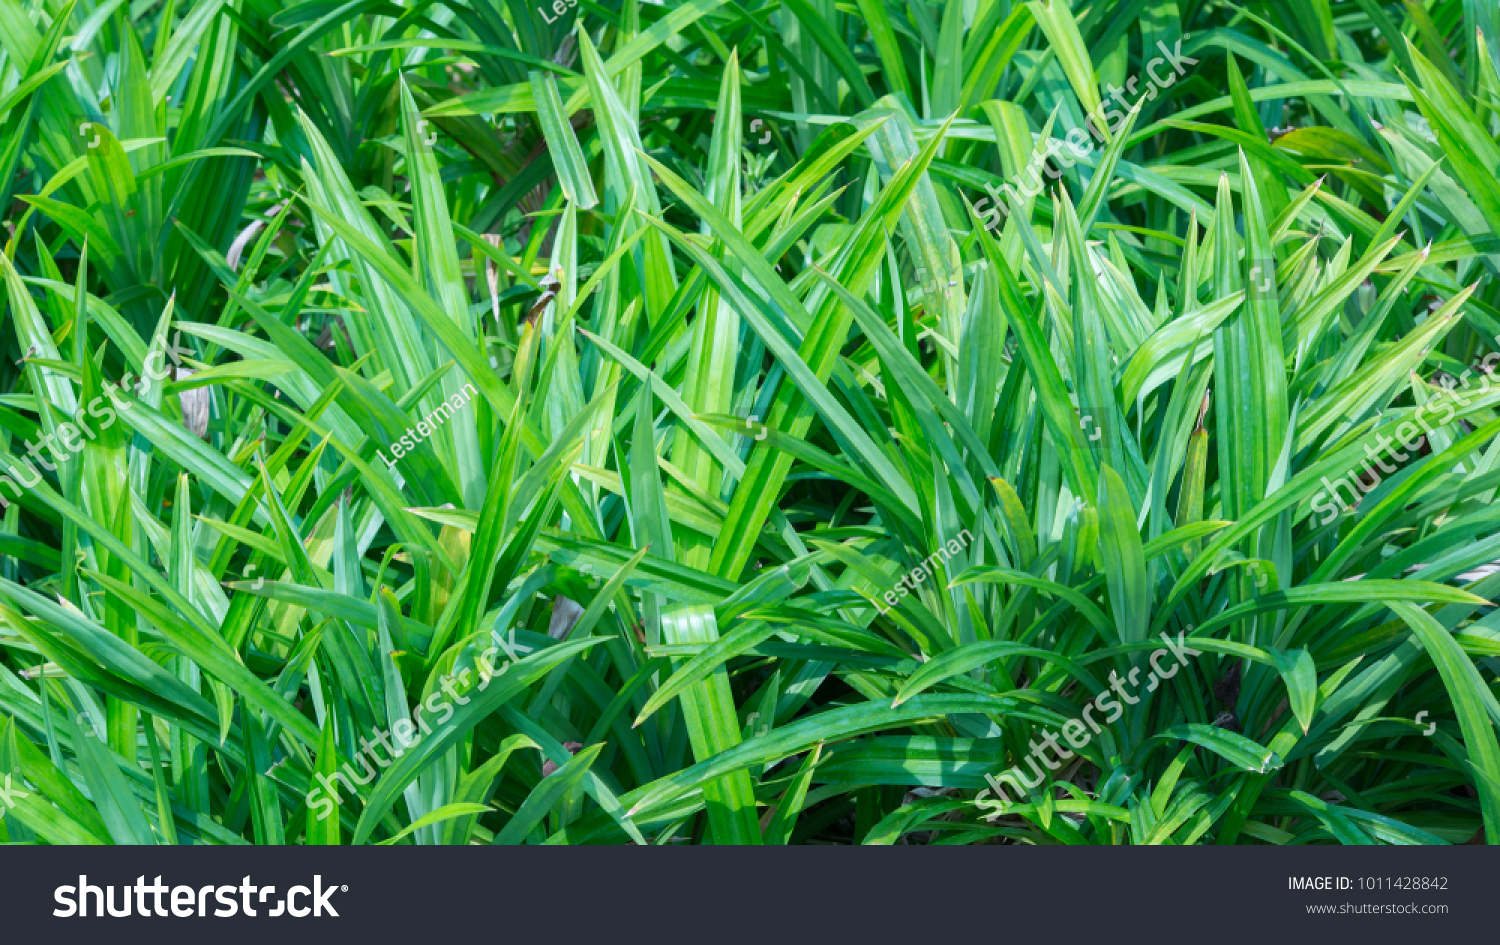 Leaves Pandanus Tree Greenish Leaves Color Stock Photo 1011428842 ...